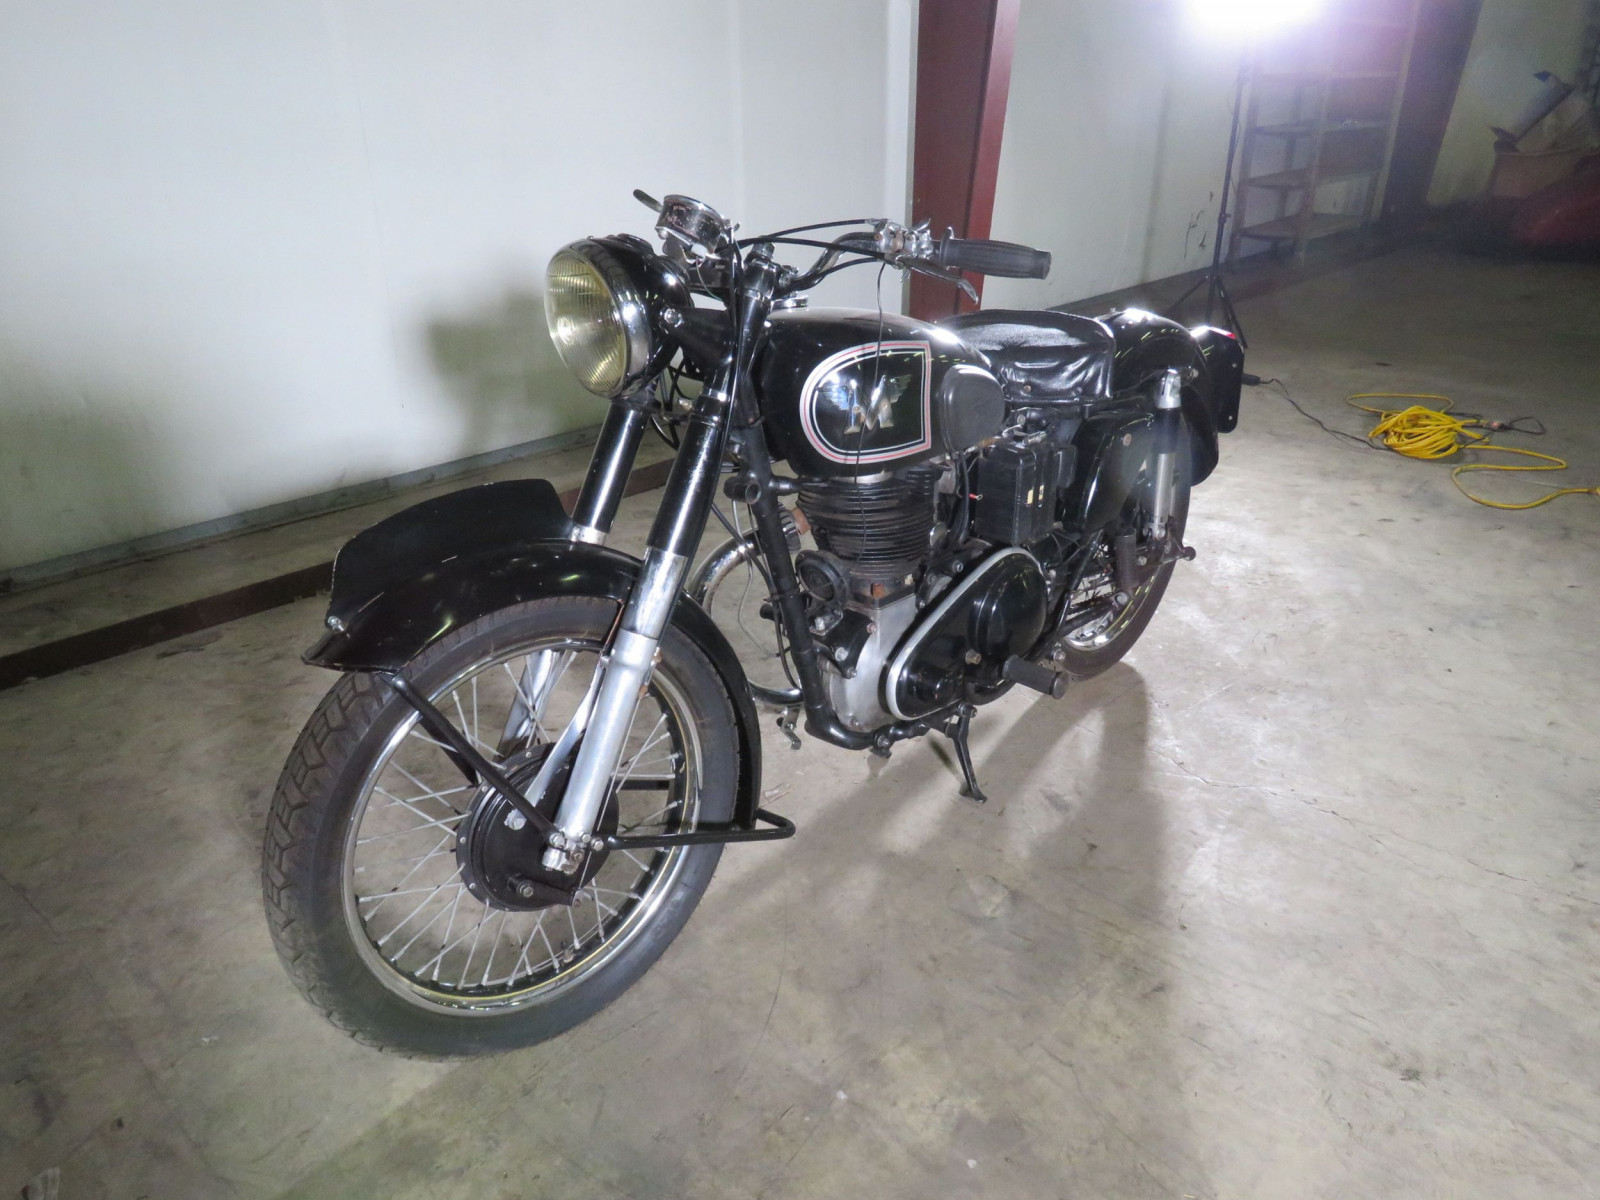 1950 Matchless G80 Motorcycle - Image 4